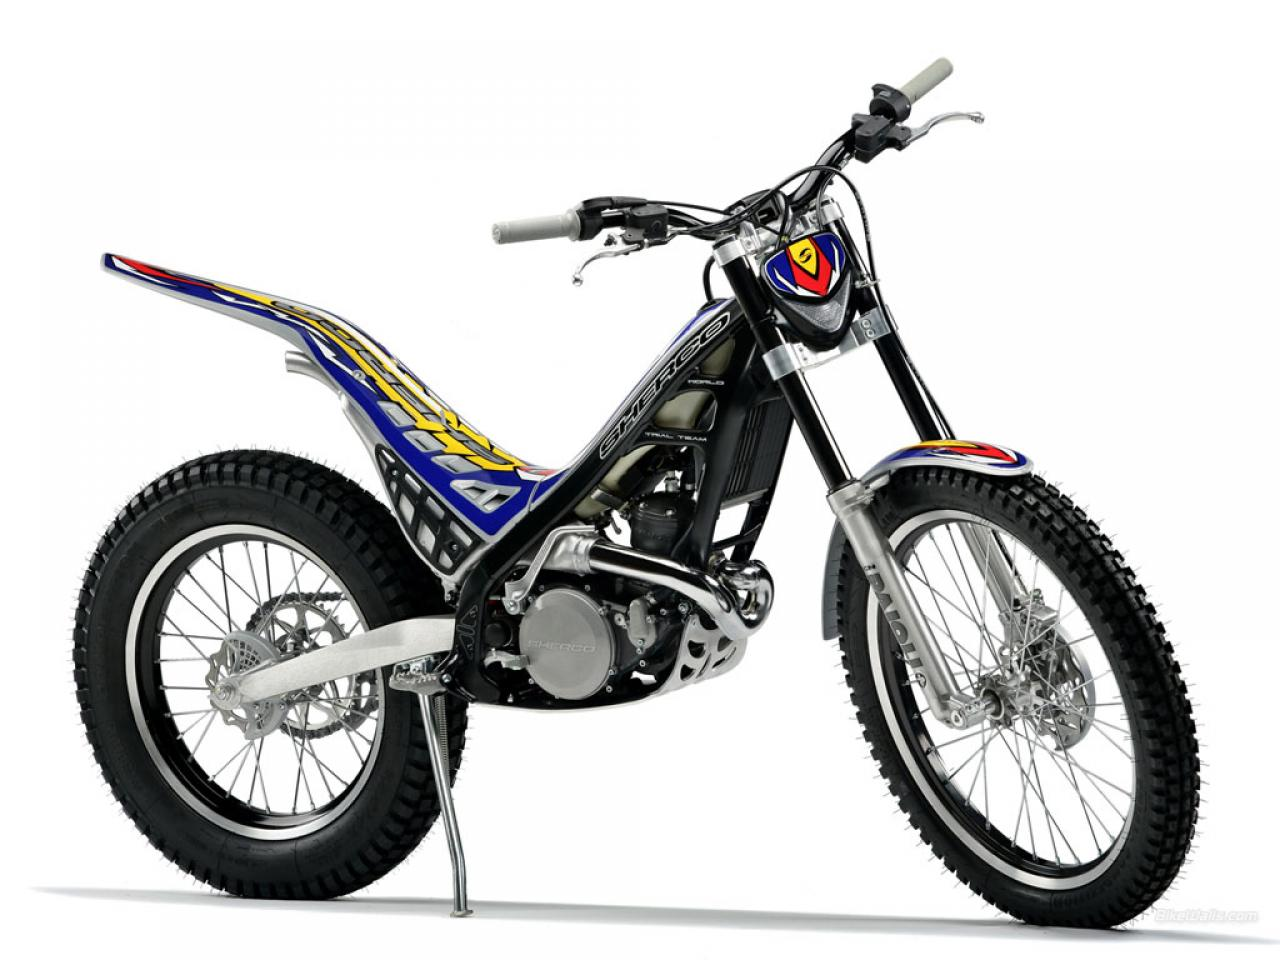 Sherco 125cc Enduro Shark Replica 2007 images #124657